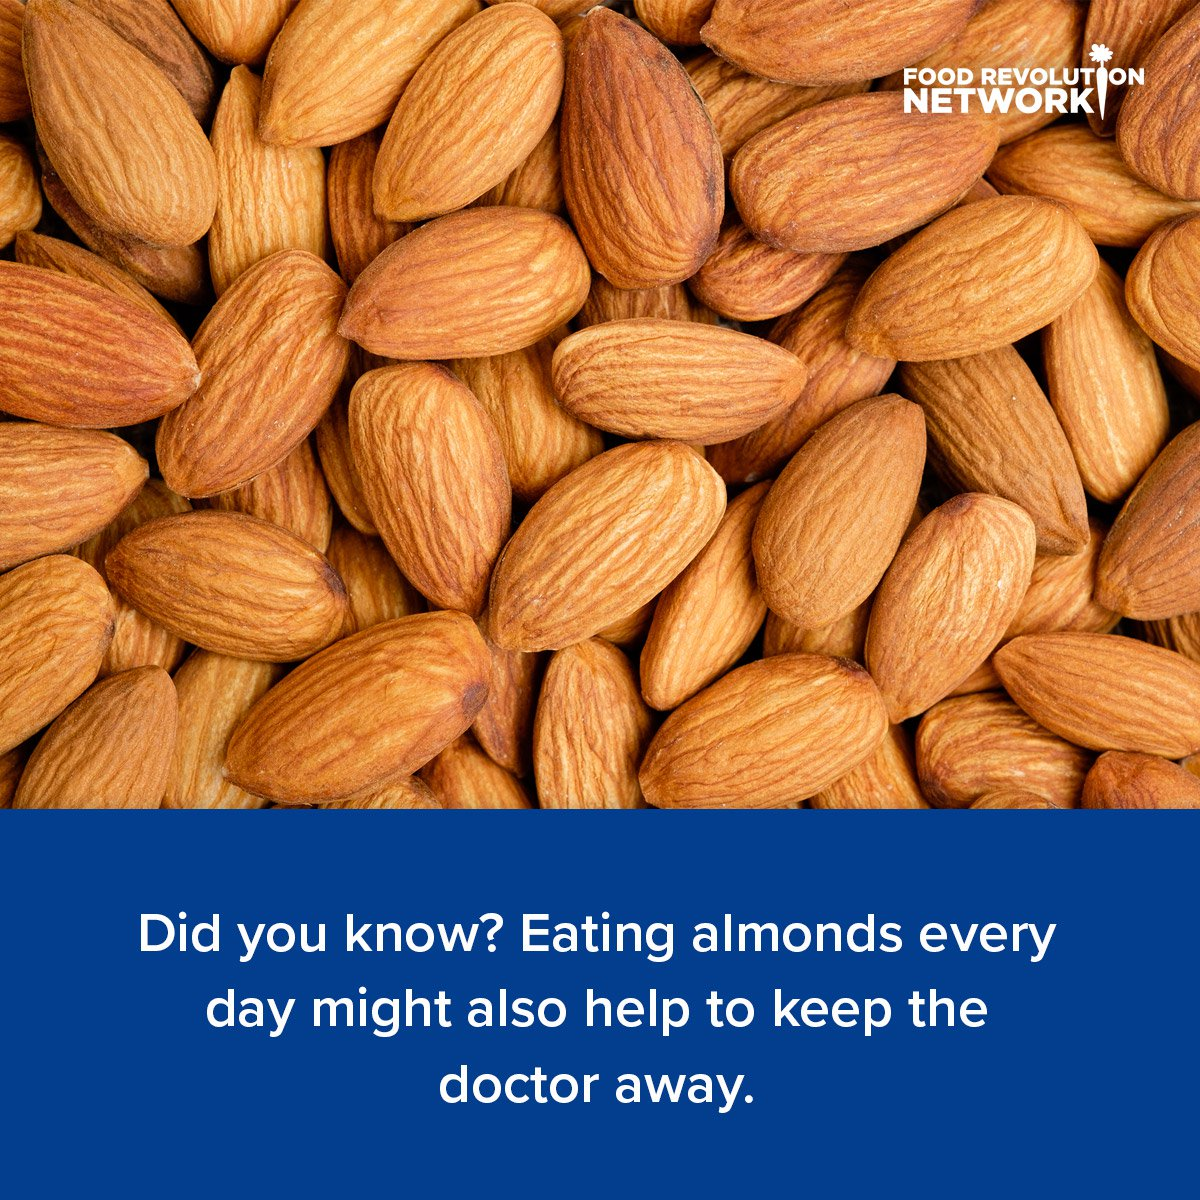 Did you know? Eating almonds every day might also help to keep the doctor away.